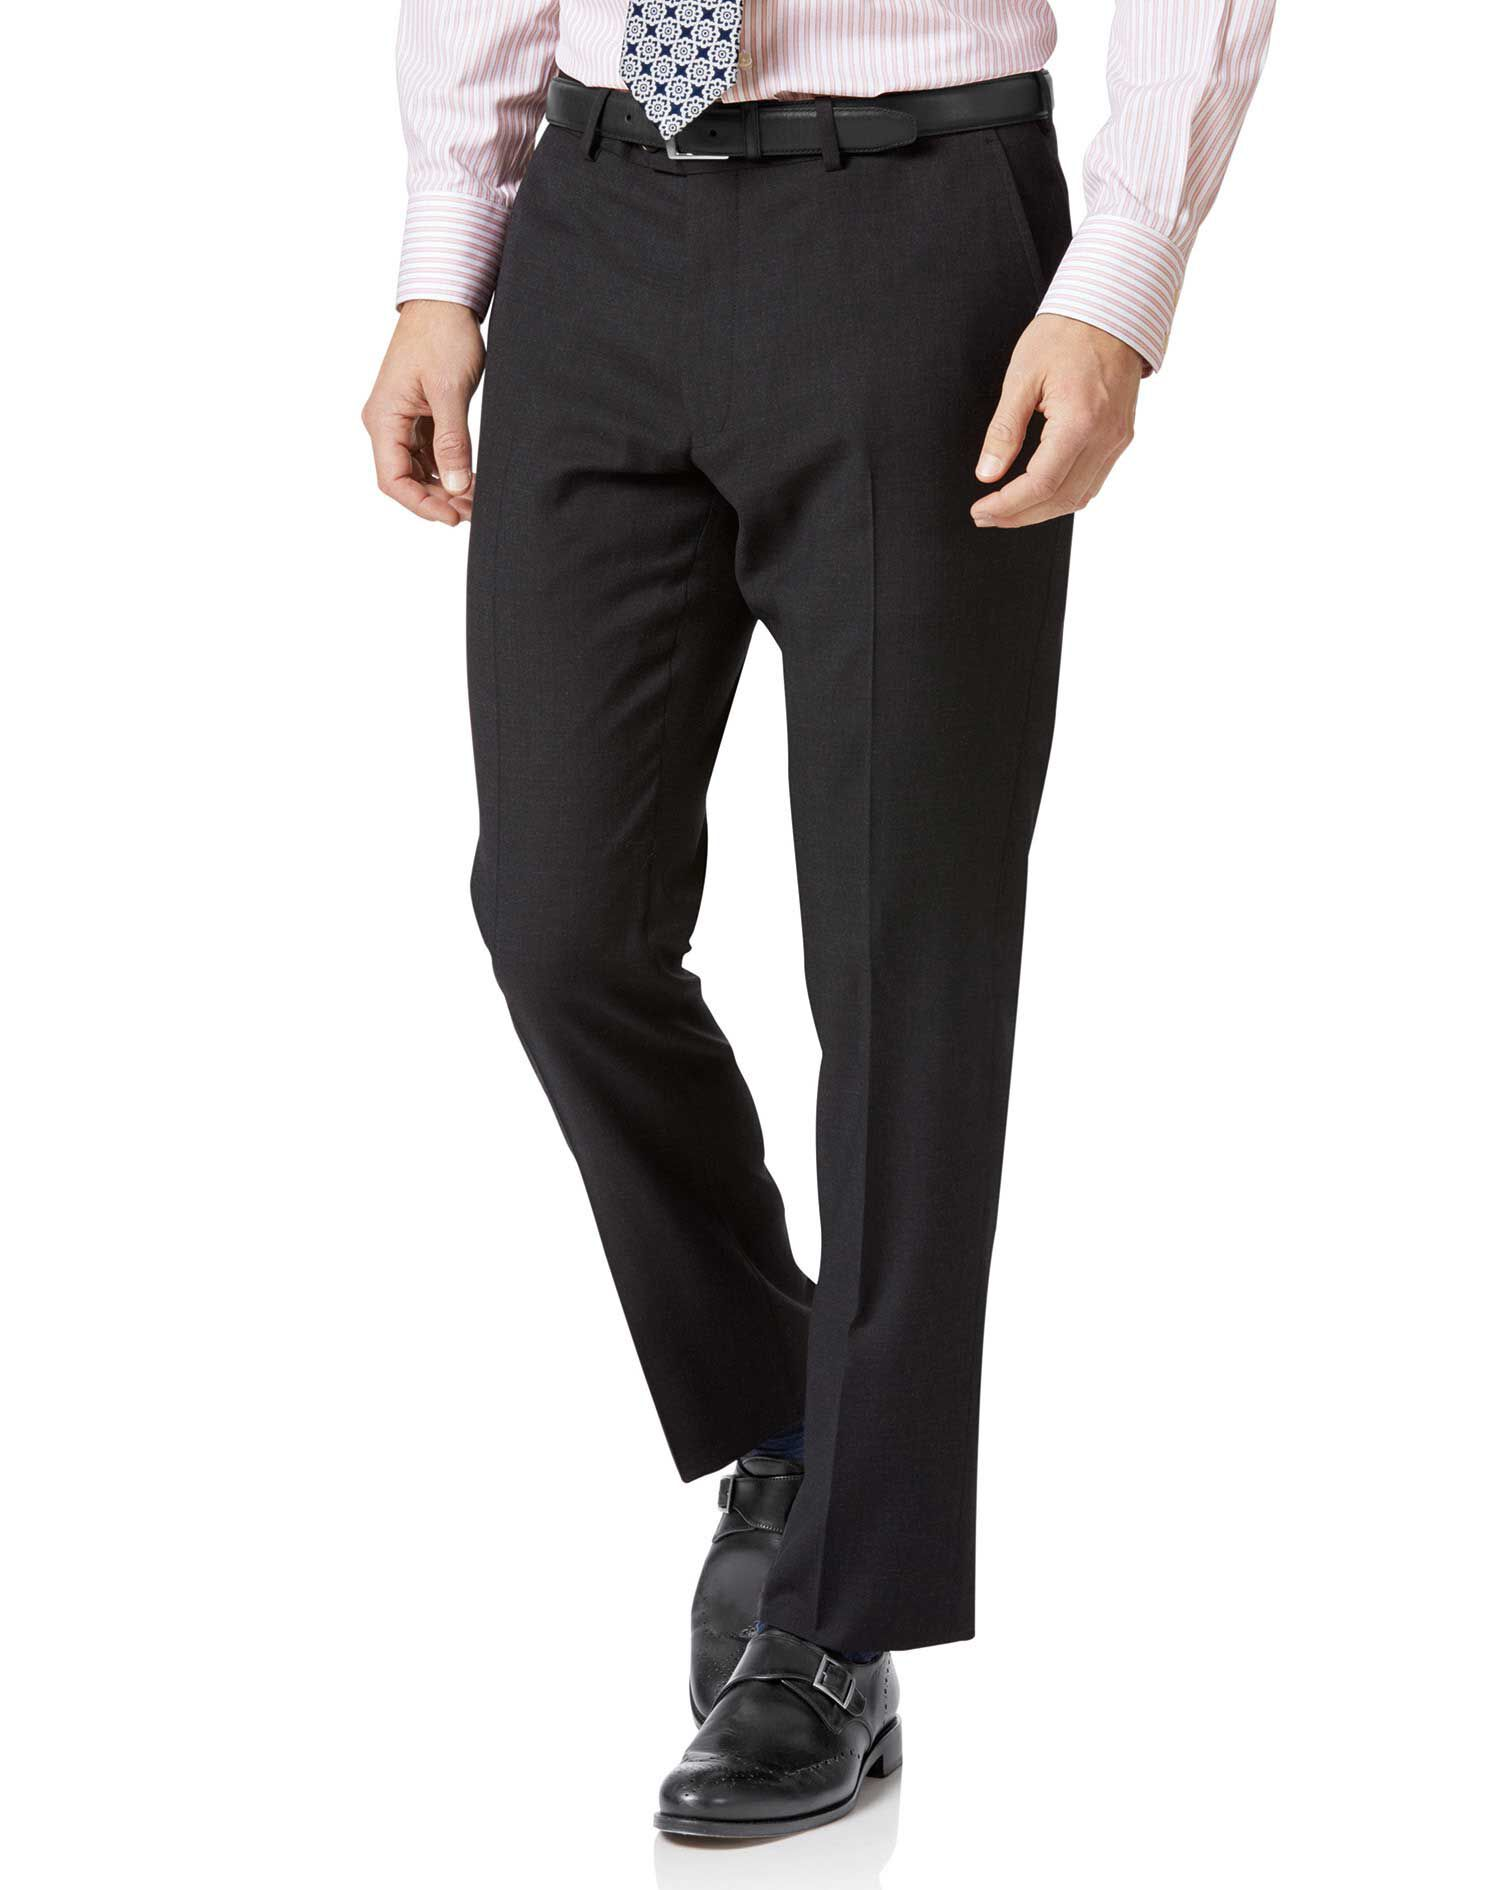 Charcoal Slim Fit Twill Business Suit Trousers Size W32 L34 by Charles Tyrwhitt